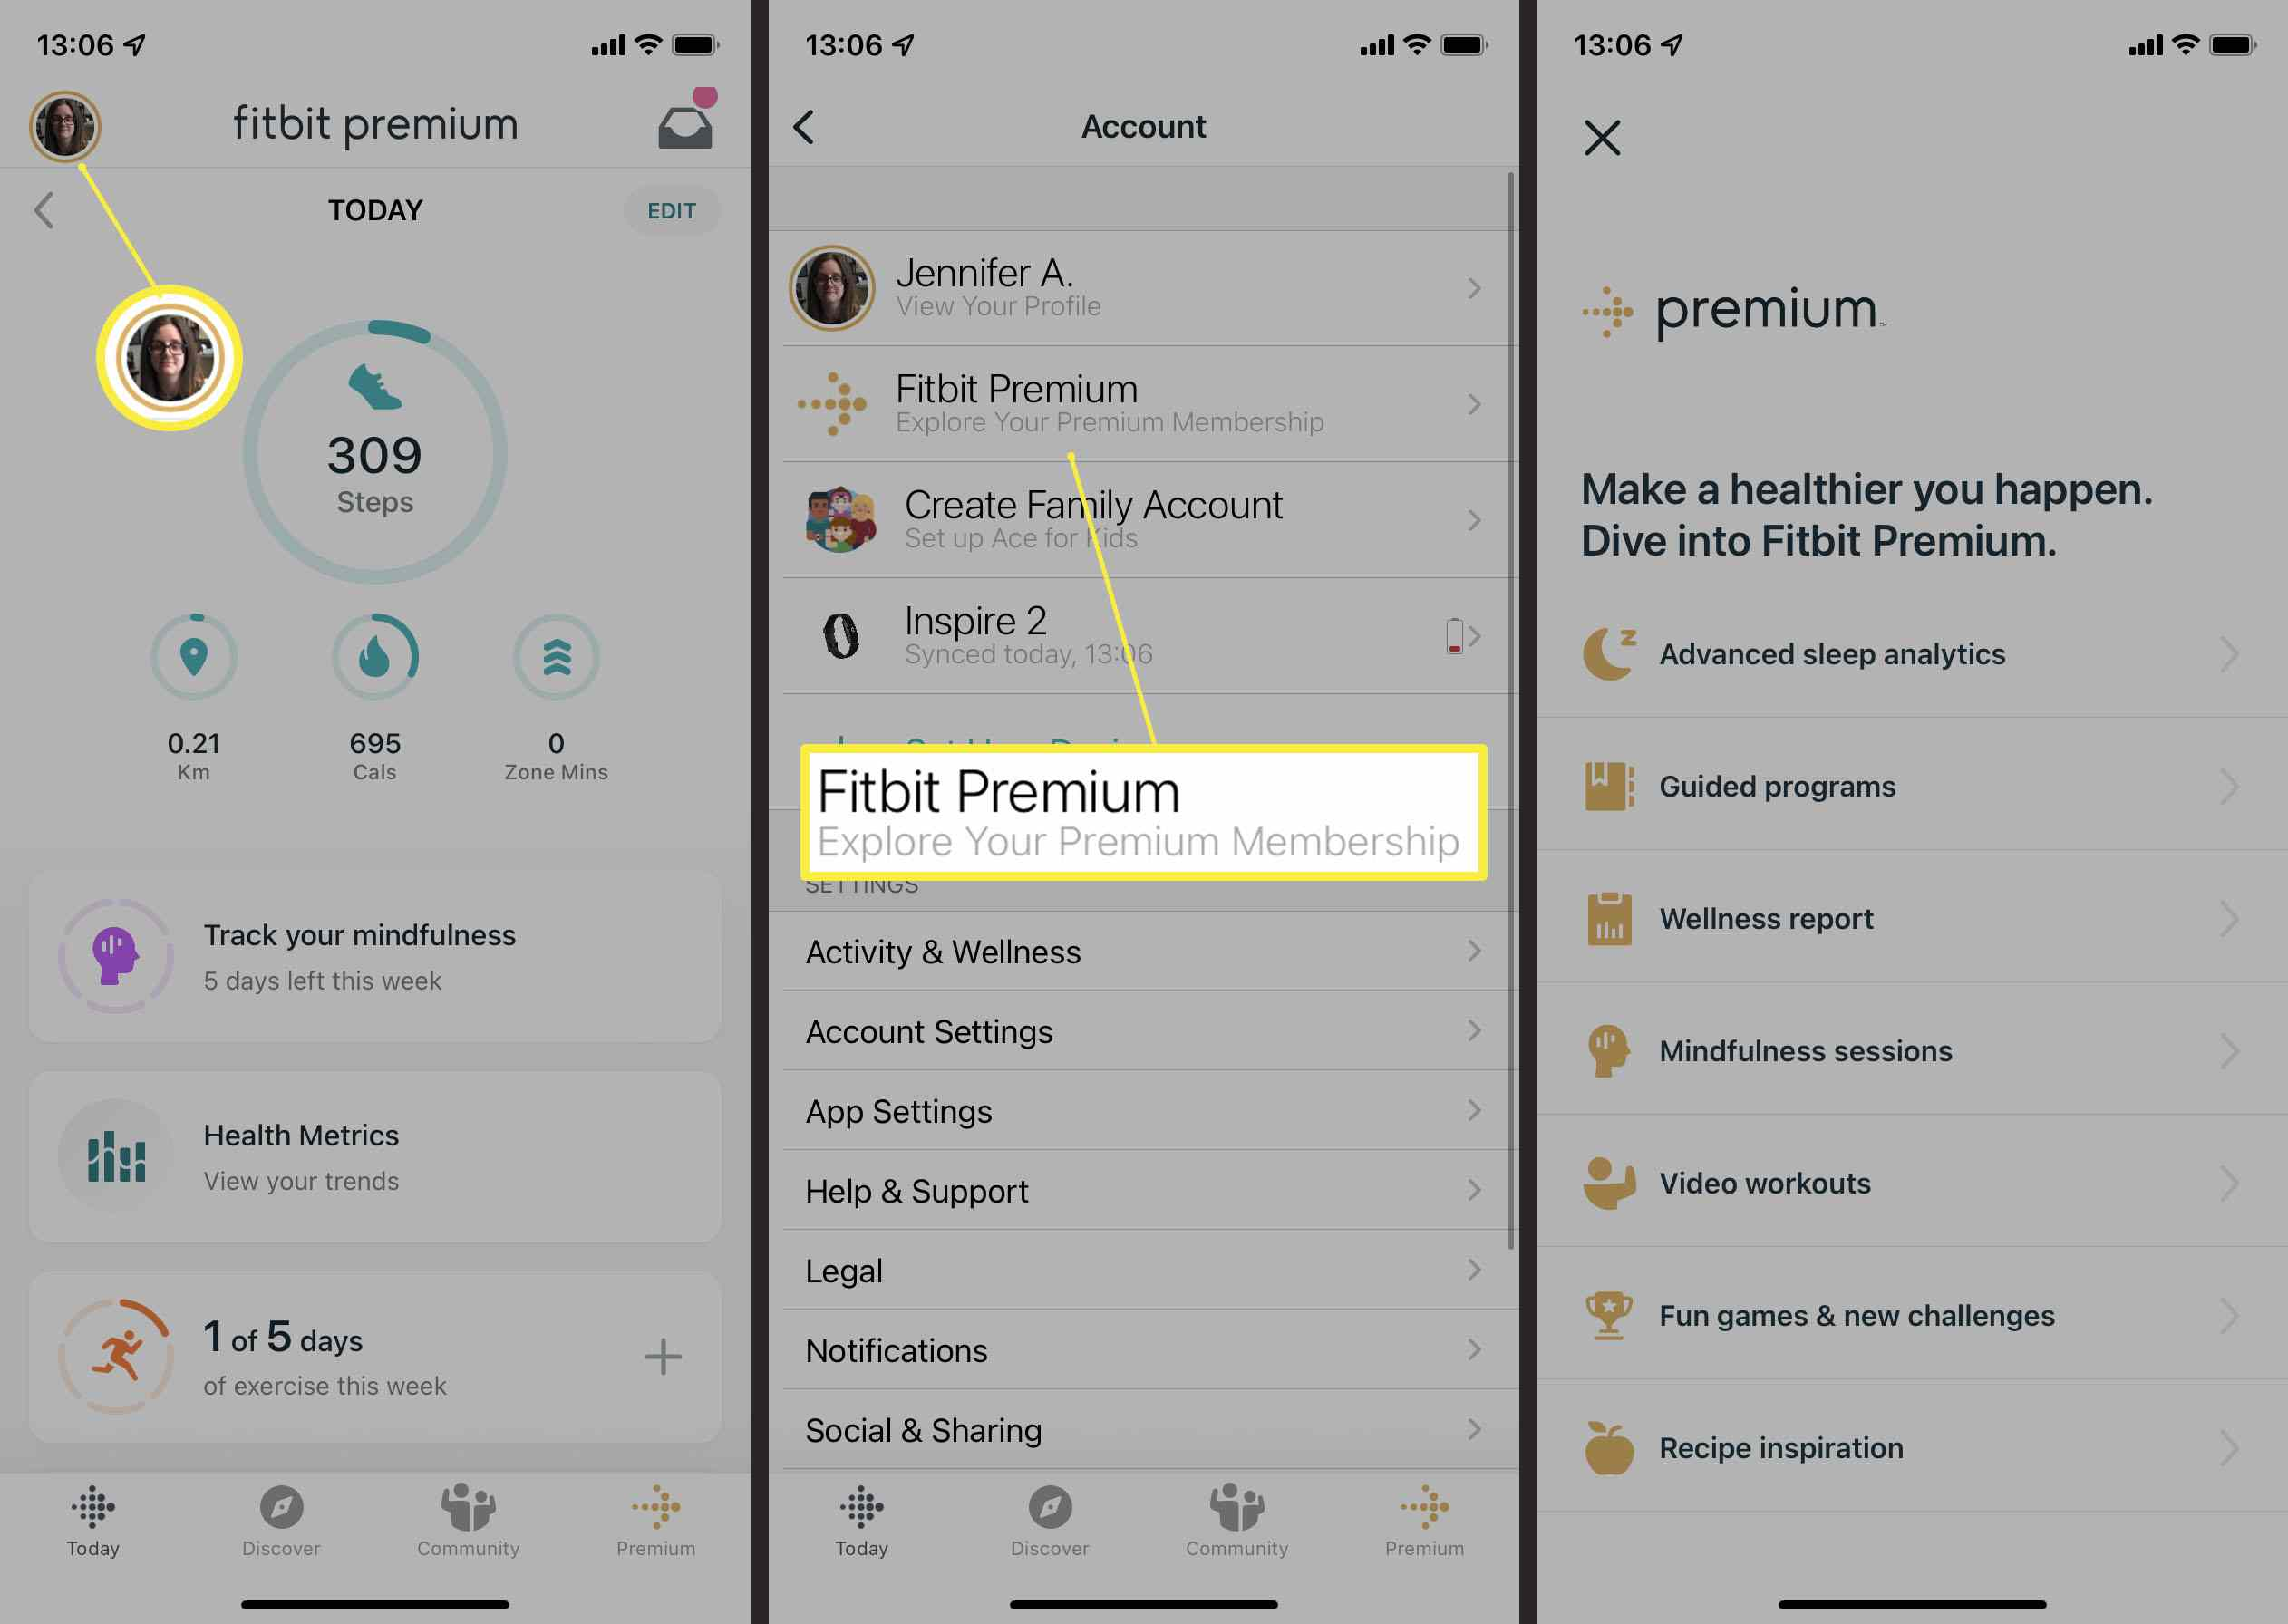 Fitbit App with Fitbit Premium highlighted.